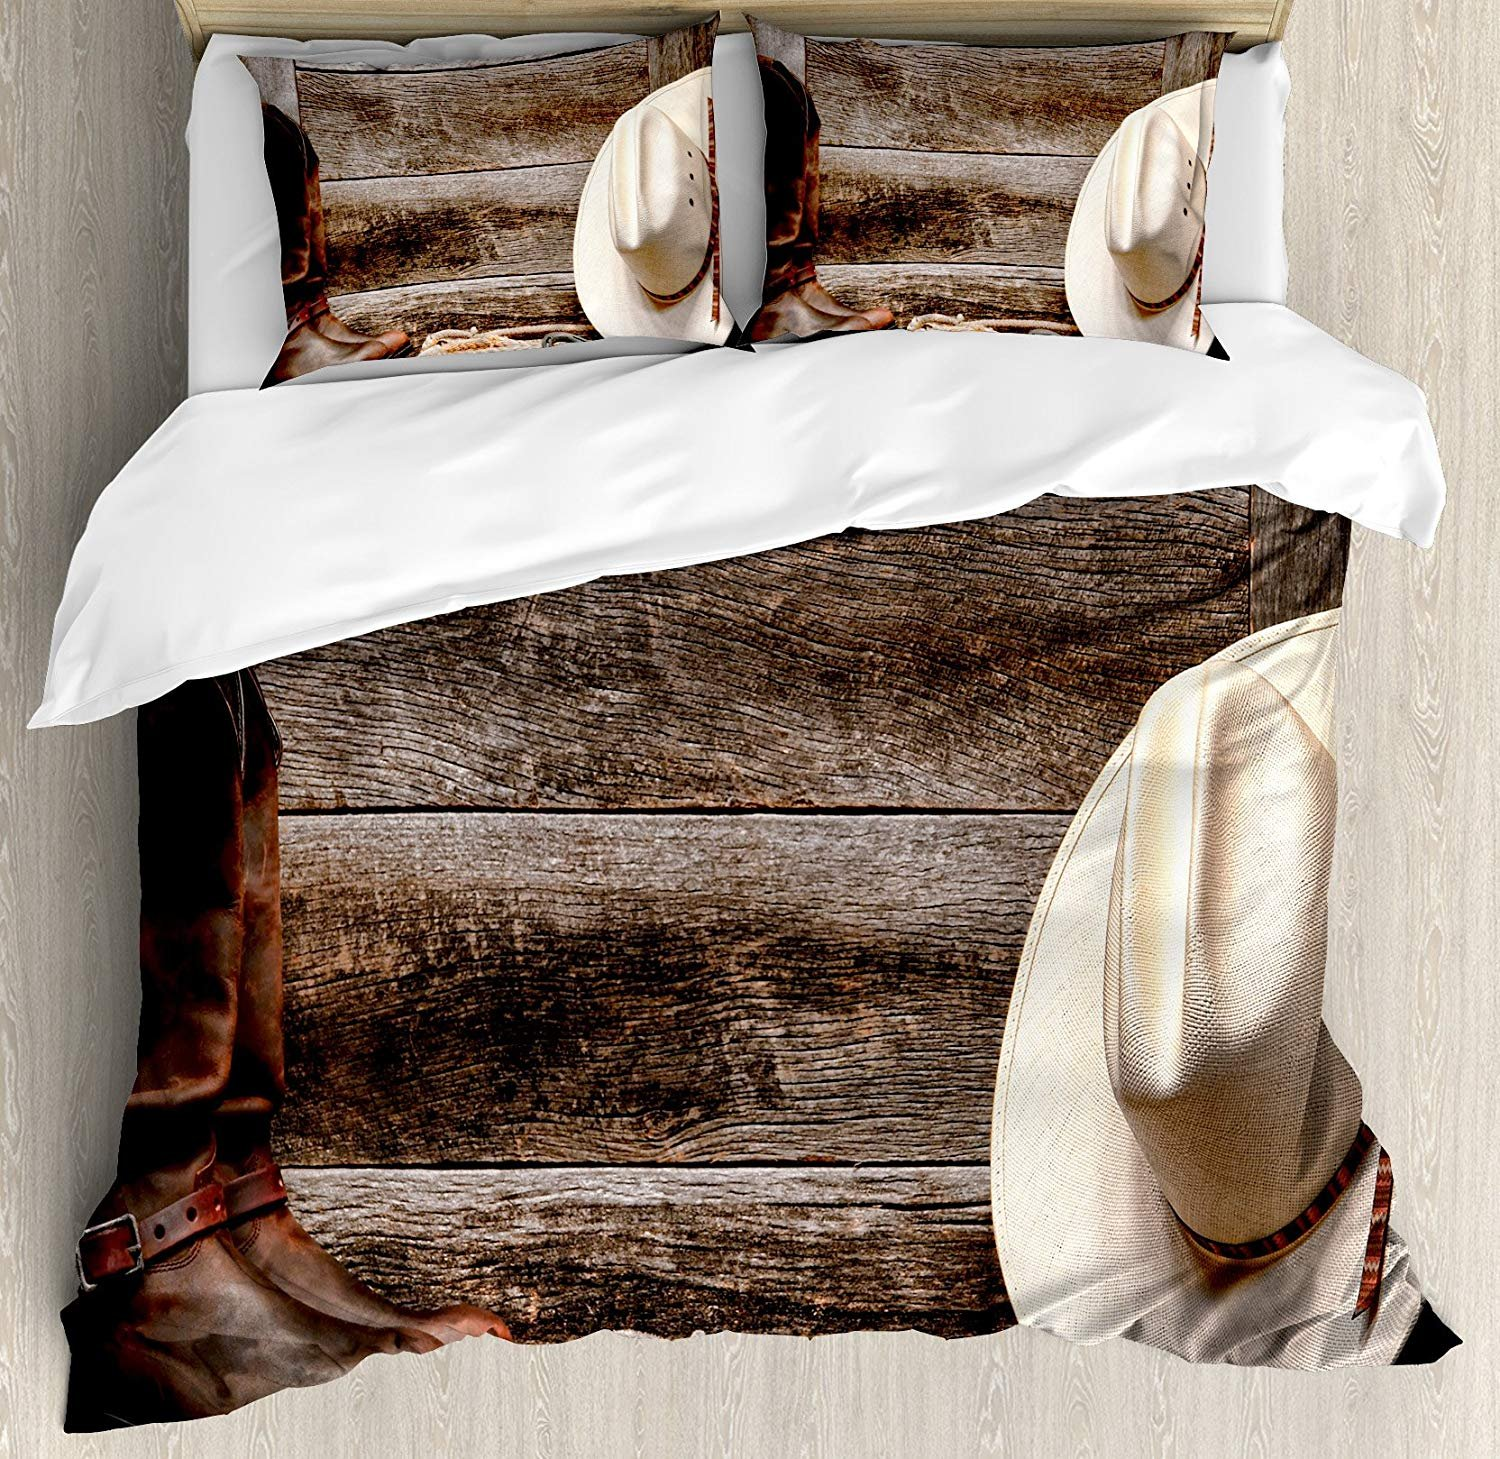 Funy Decor Western Bedding Set, American West Rodeo White Straw Cowboy Hat with Lariat Leather Boots on Rustic Barn Wood, 4 Piece Duvet Cover Set Bedspread for Childrens/Kids/Teens/Adults Twin Size by Funy Decor (Image #1)